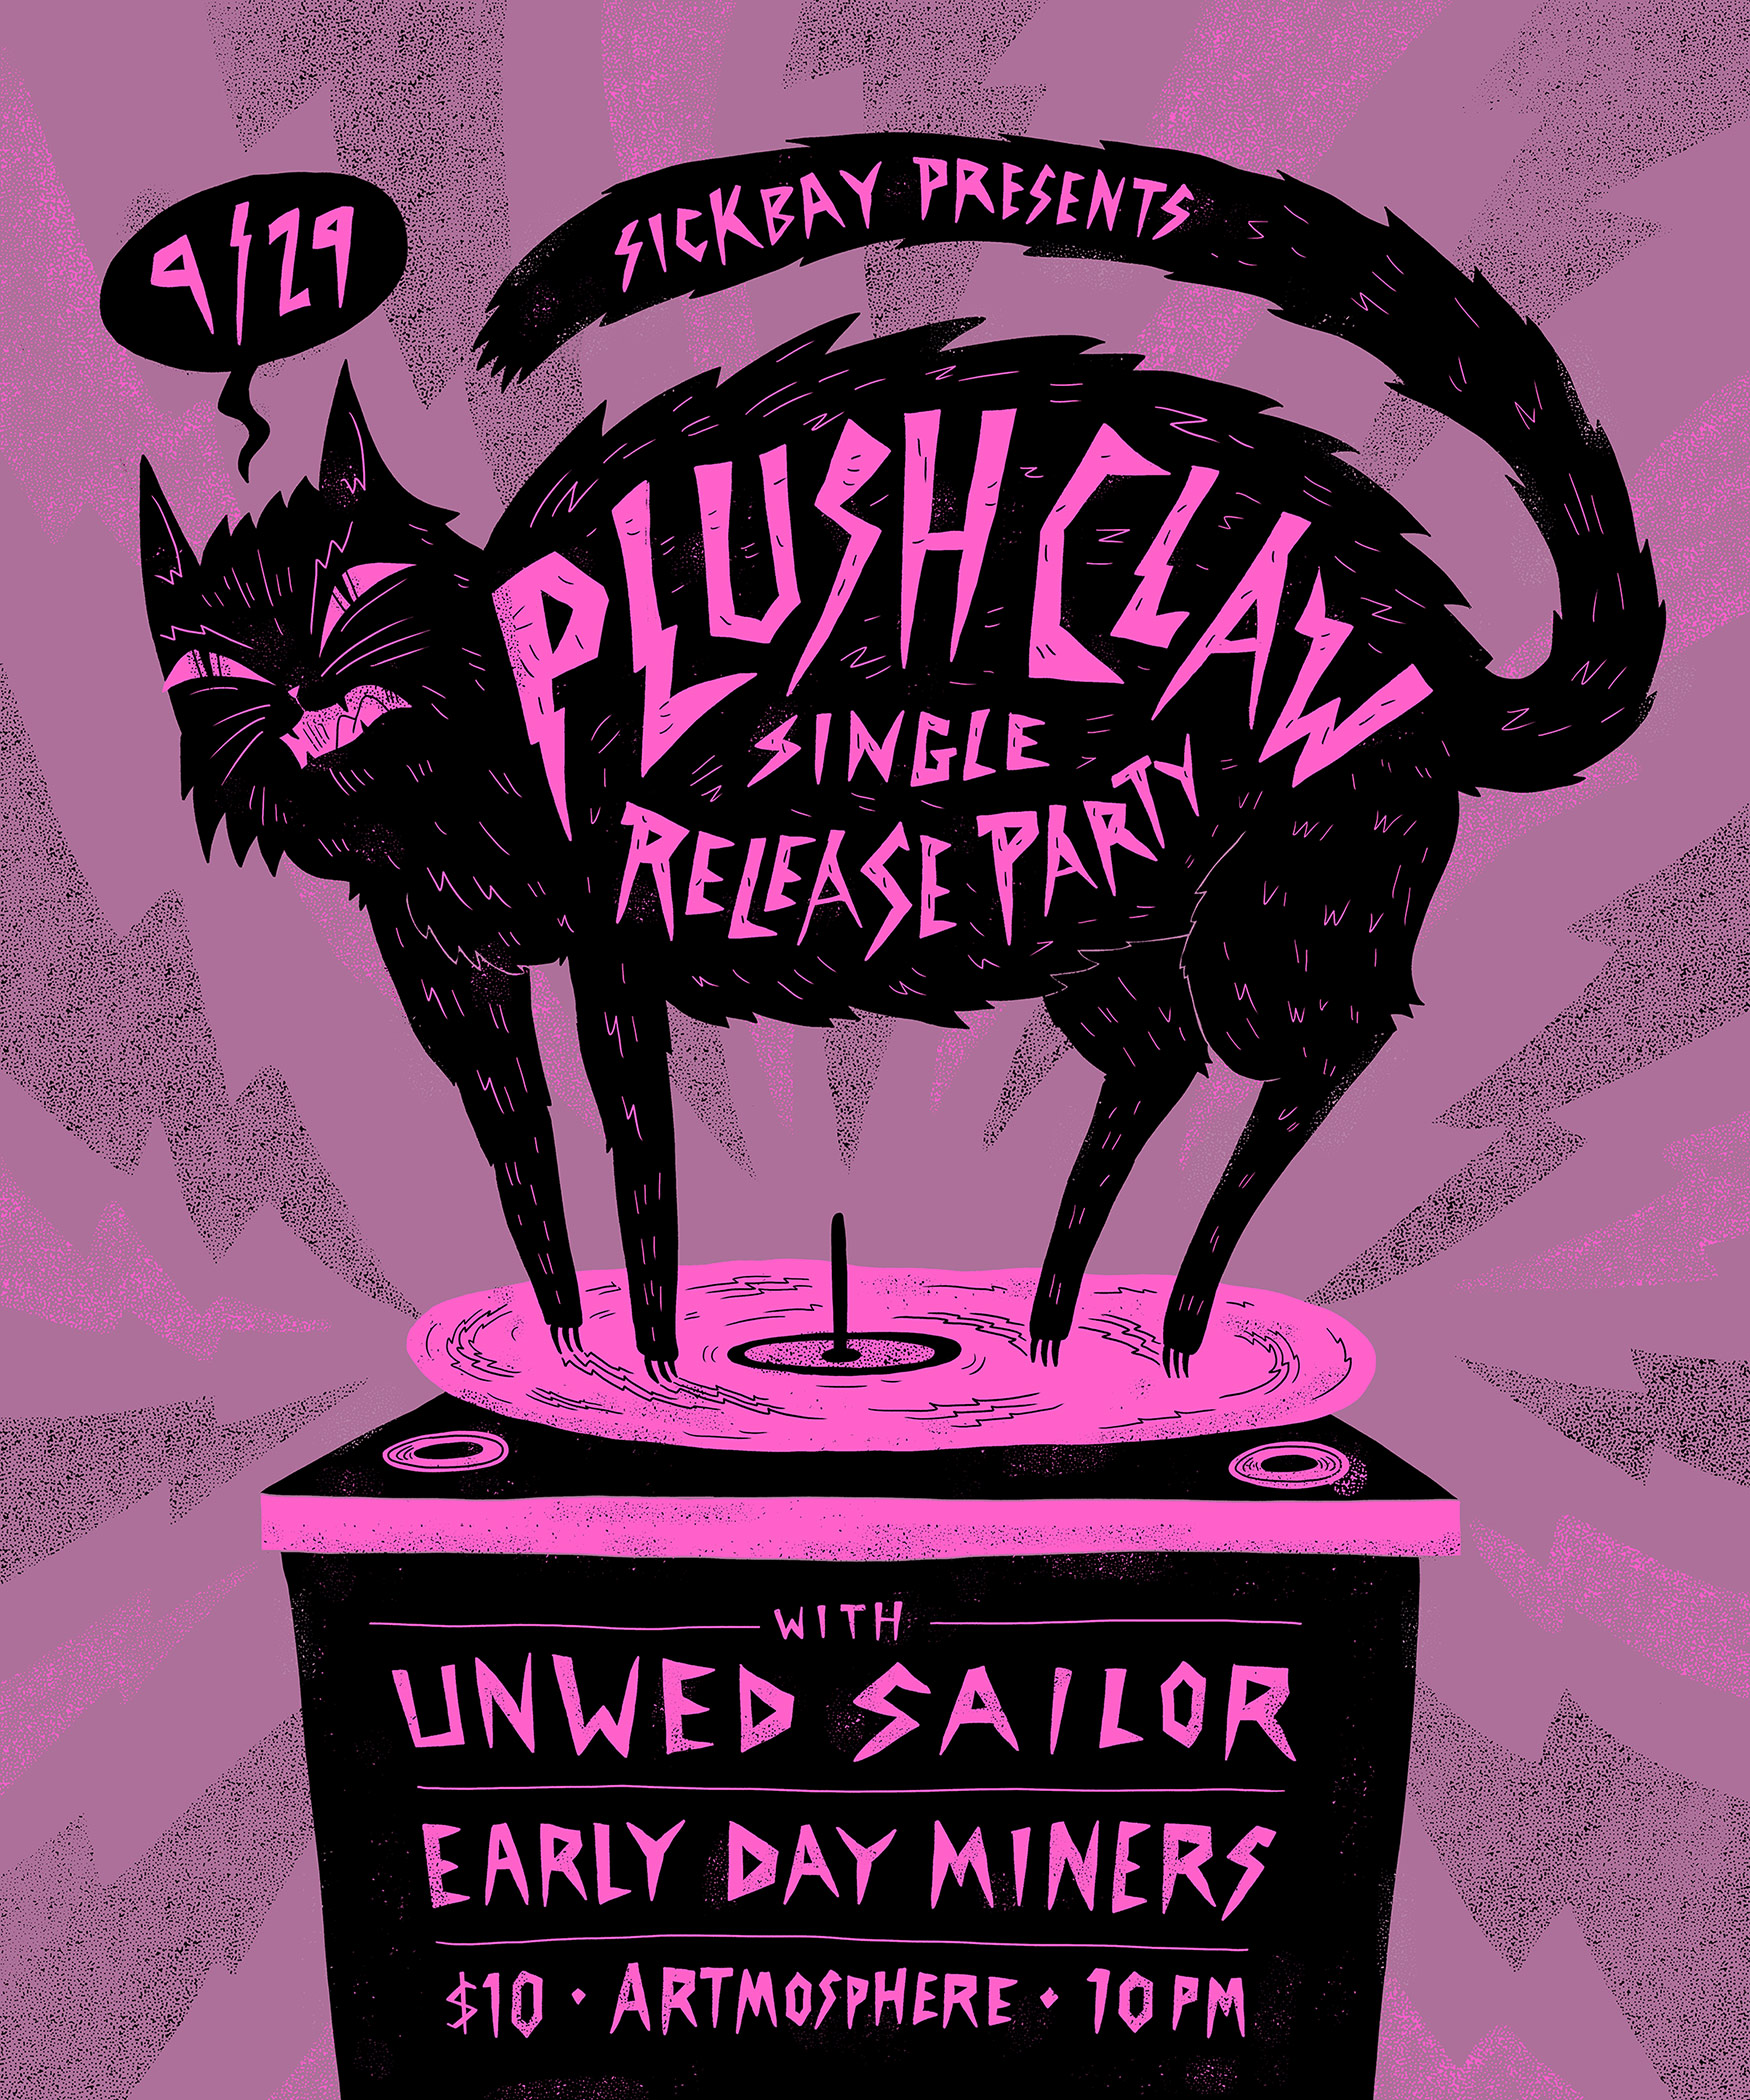 Plush Claw Single Release